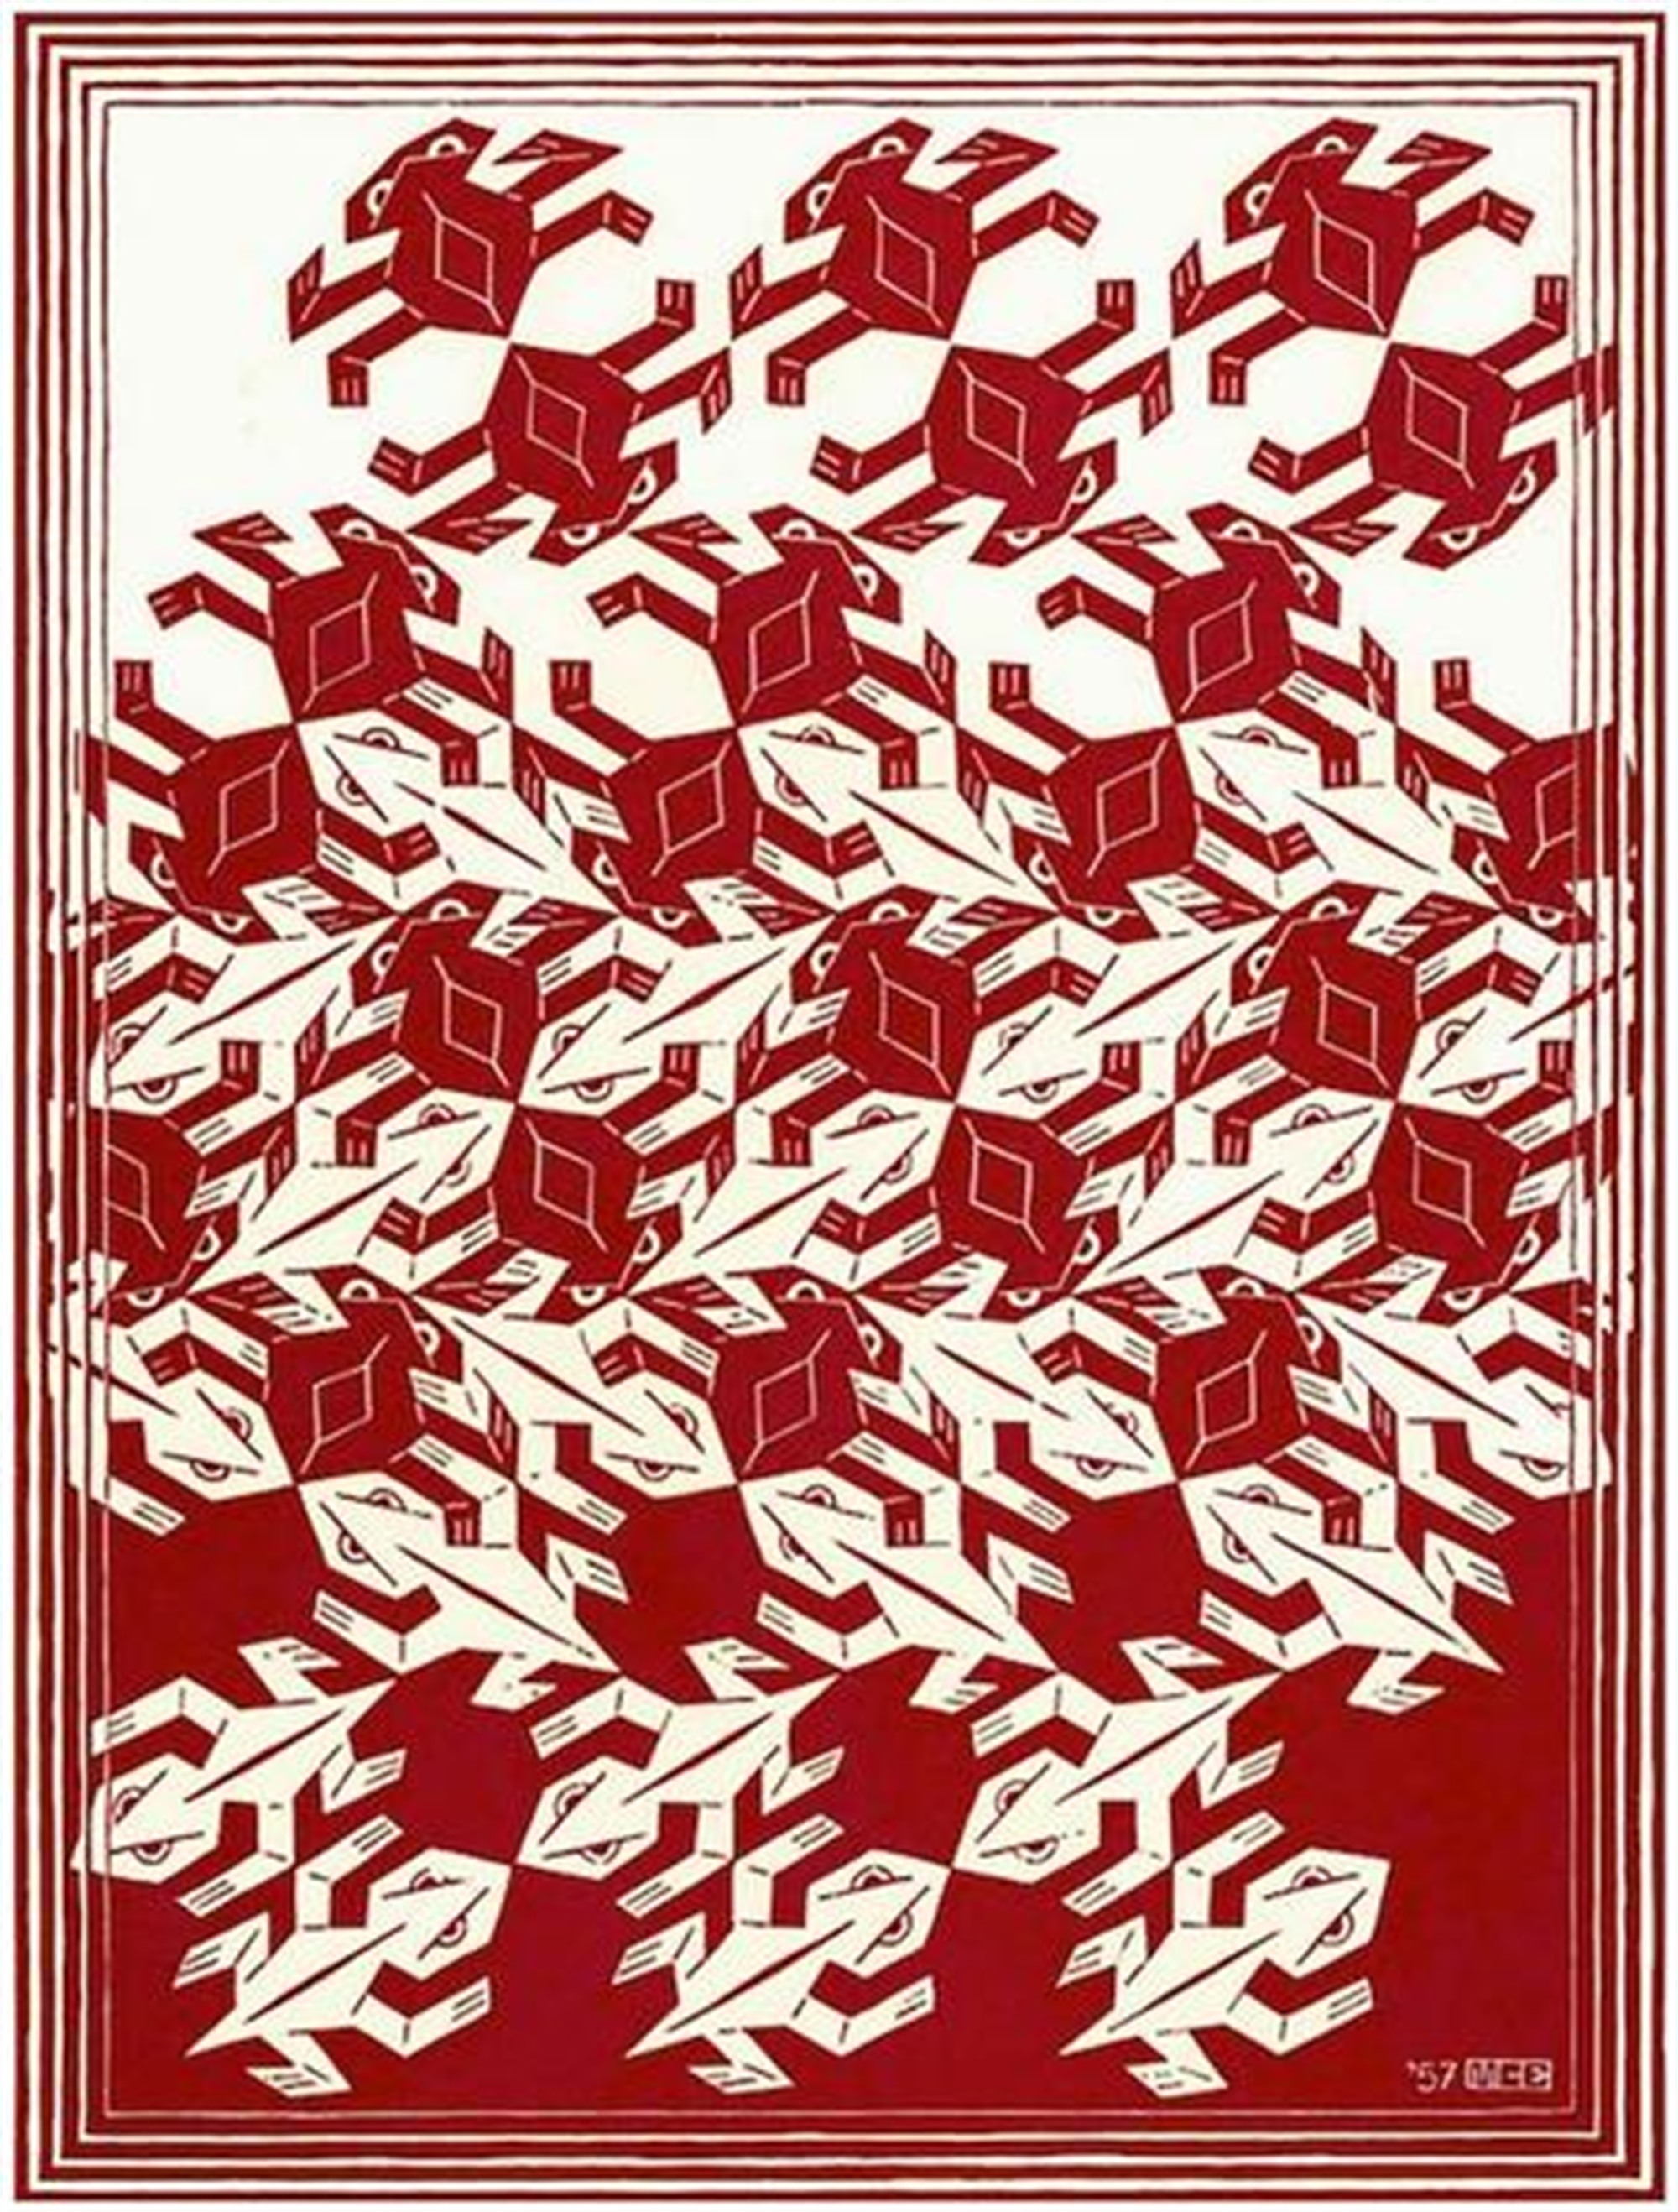 Regular Division of the Plane V (Red) by M.C. Escher